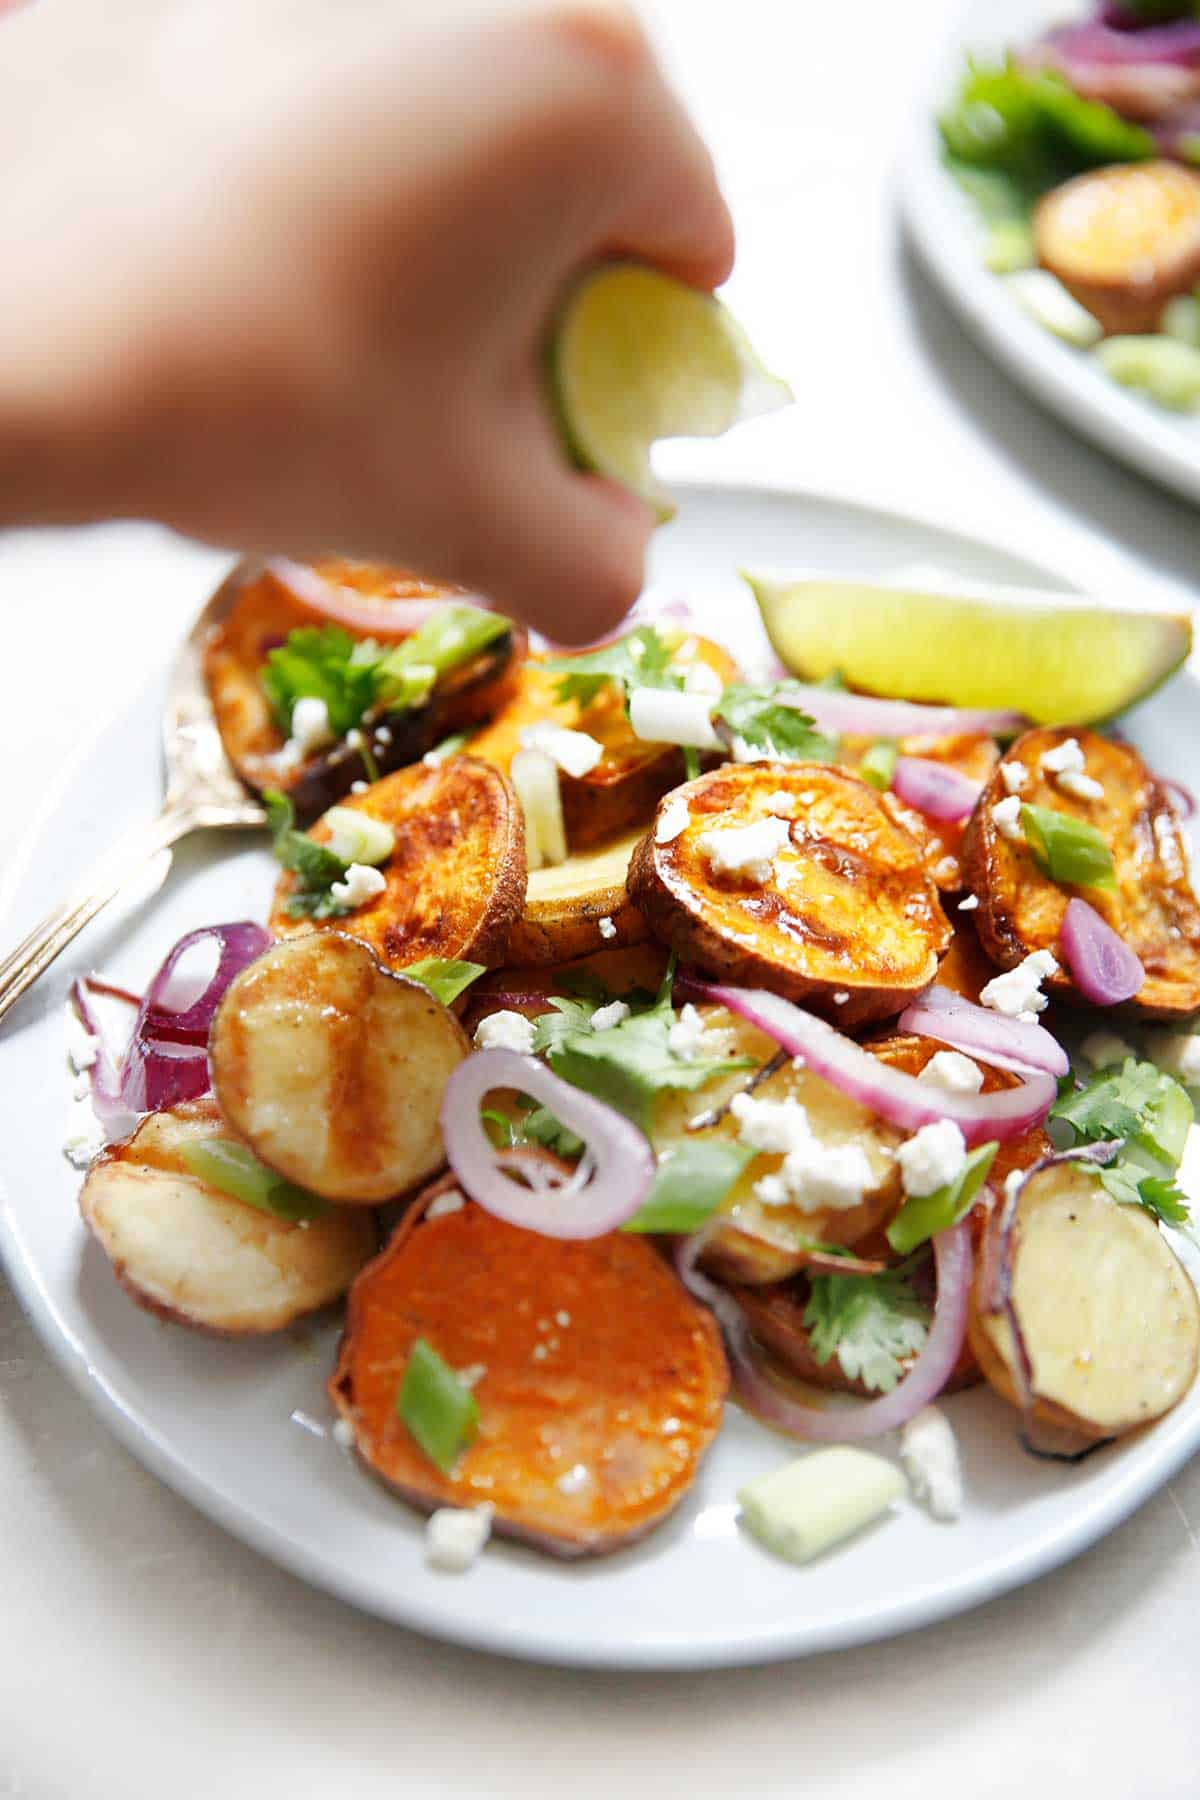 Grilled Sweet Potato Salad with Honey Mustard Vinaigrette (Vegetarian & Gluten-Free) - Lexi's Clean Kitchen